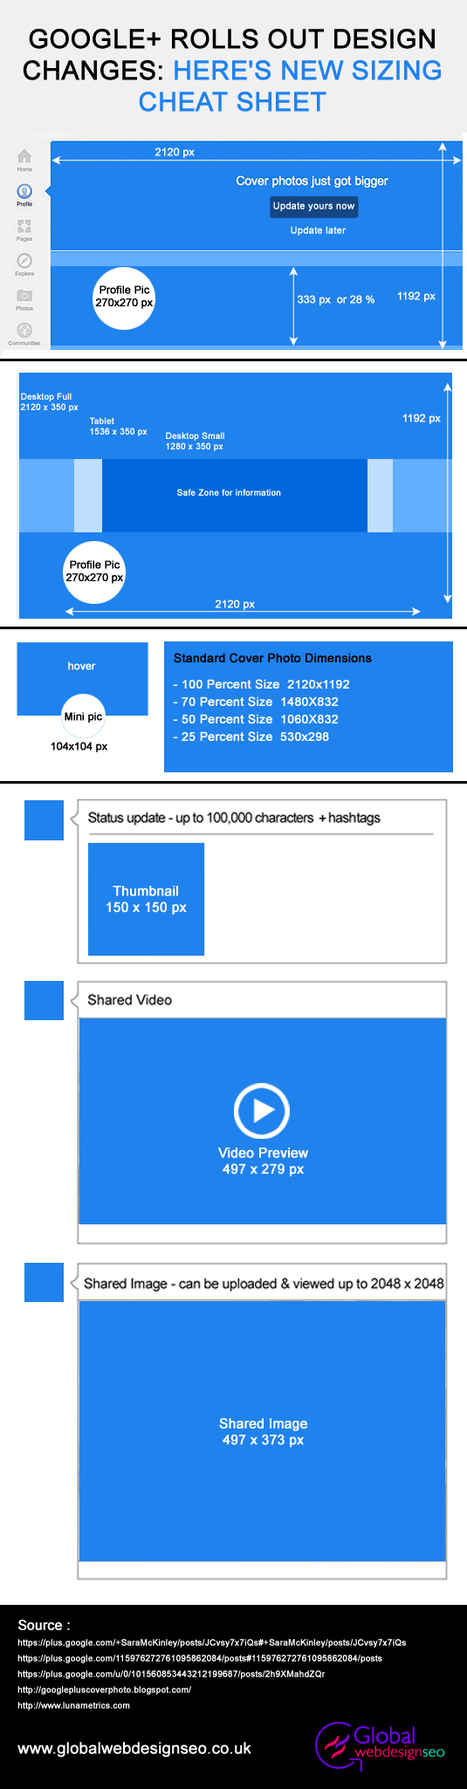 Image Sizing Guide For Redesigned Google+ [Infographic] | adavenue | Scoop.it